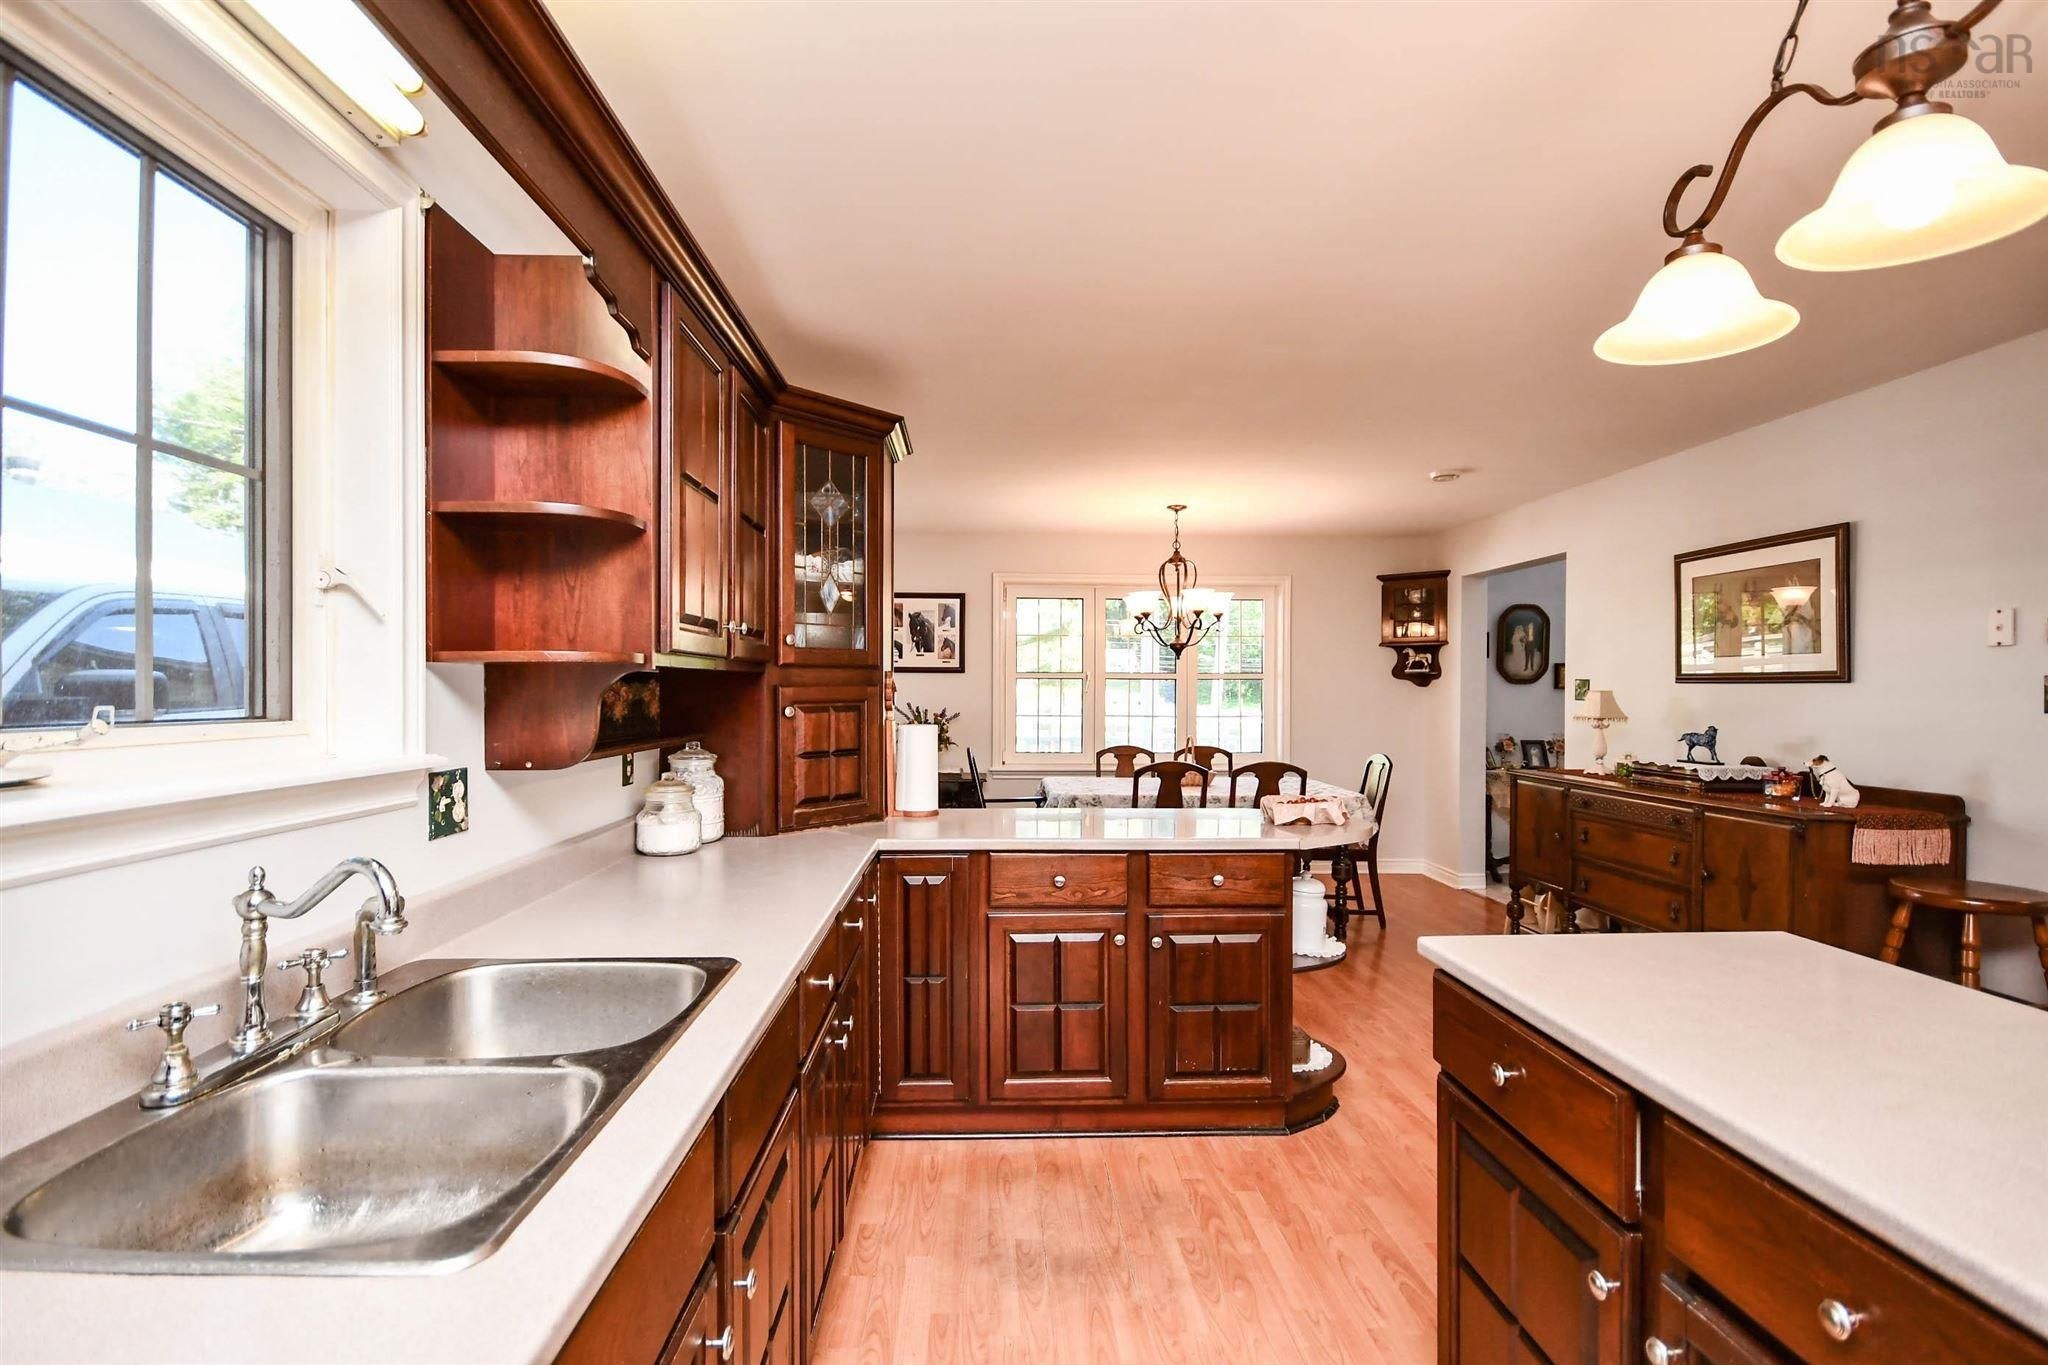 Photo 6: Photos: 5359 Highway 2 in Grand Lake: 30-Waverley, Fall River, Oakfield Residential for sale (Halifax-Dartmouth)  : MLS®# 202123644